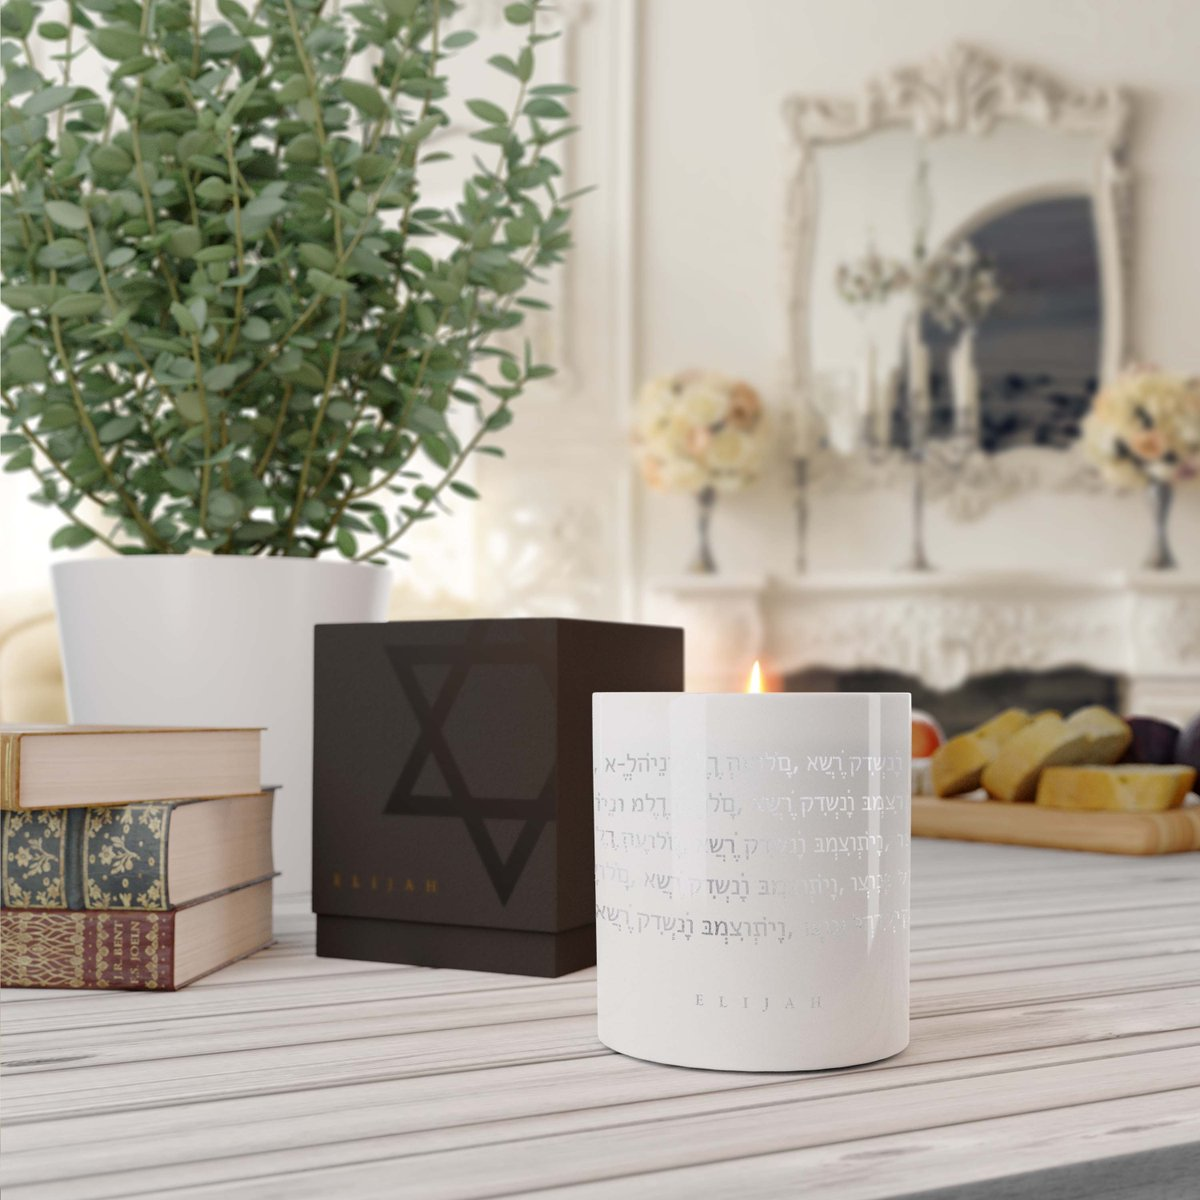 Meaningful home decor that inspires peace and aligns with your values. Order your Elijah Candle today✨